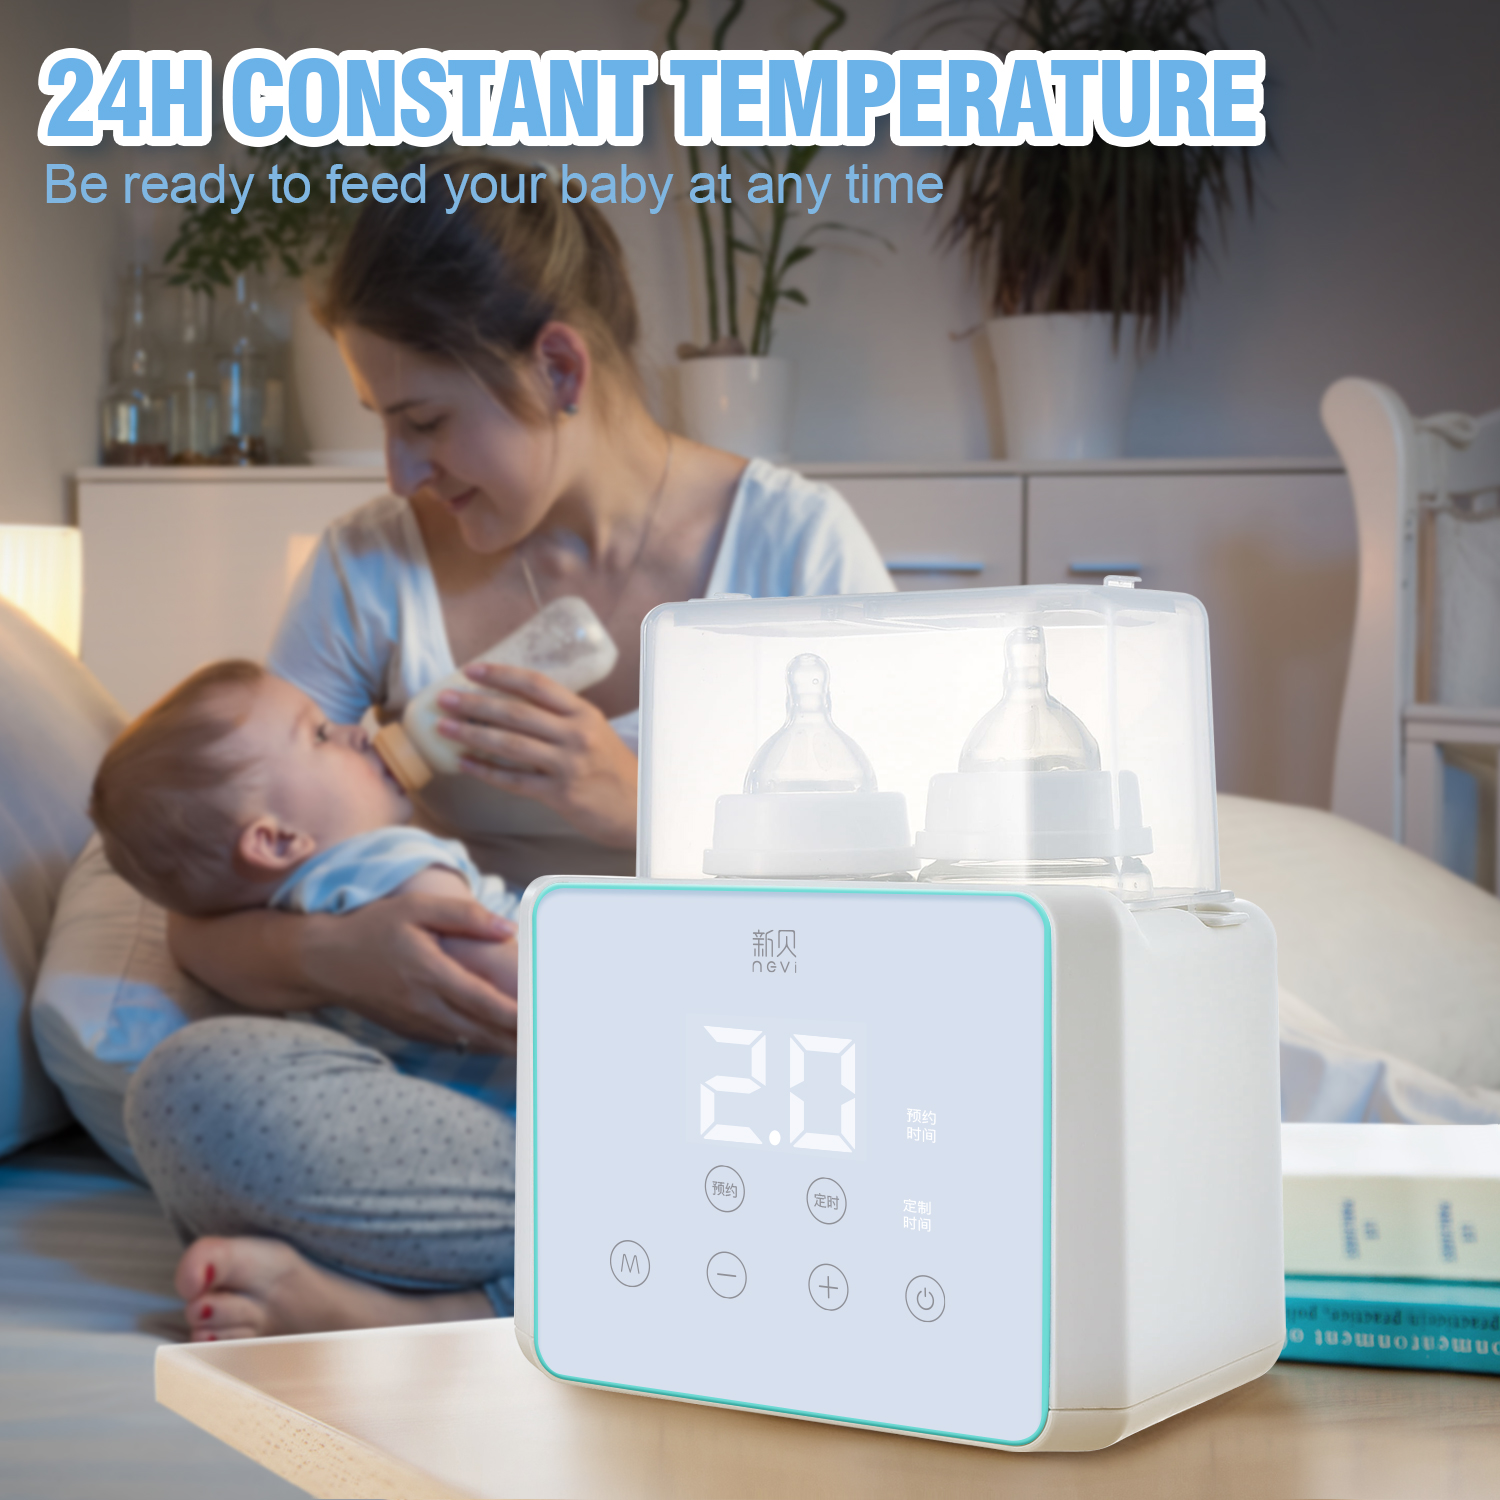 Baby Bottle Warmer & Bottle Sterilizer, Double Bottle Warmer for Breast Milk, LCD Display Accurate Temperature Control 3